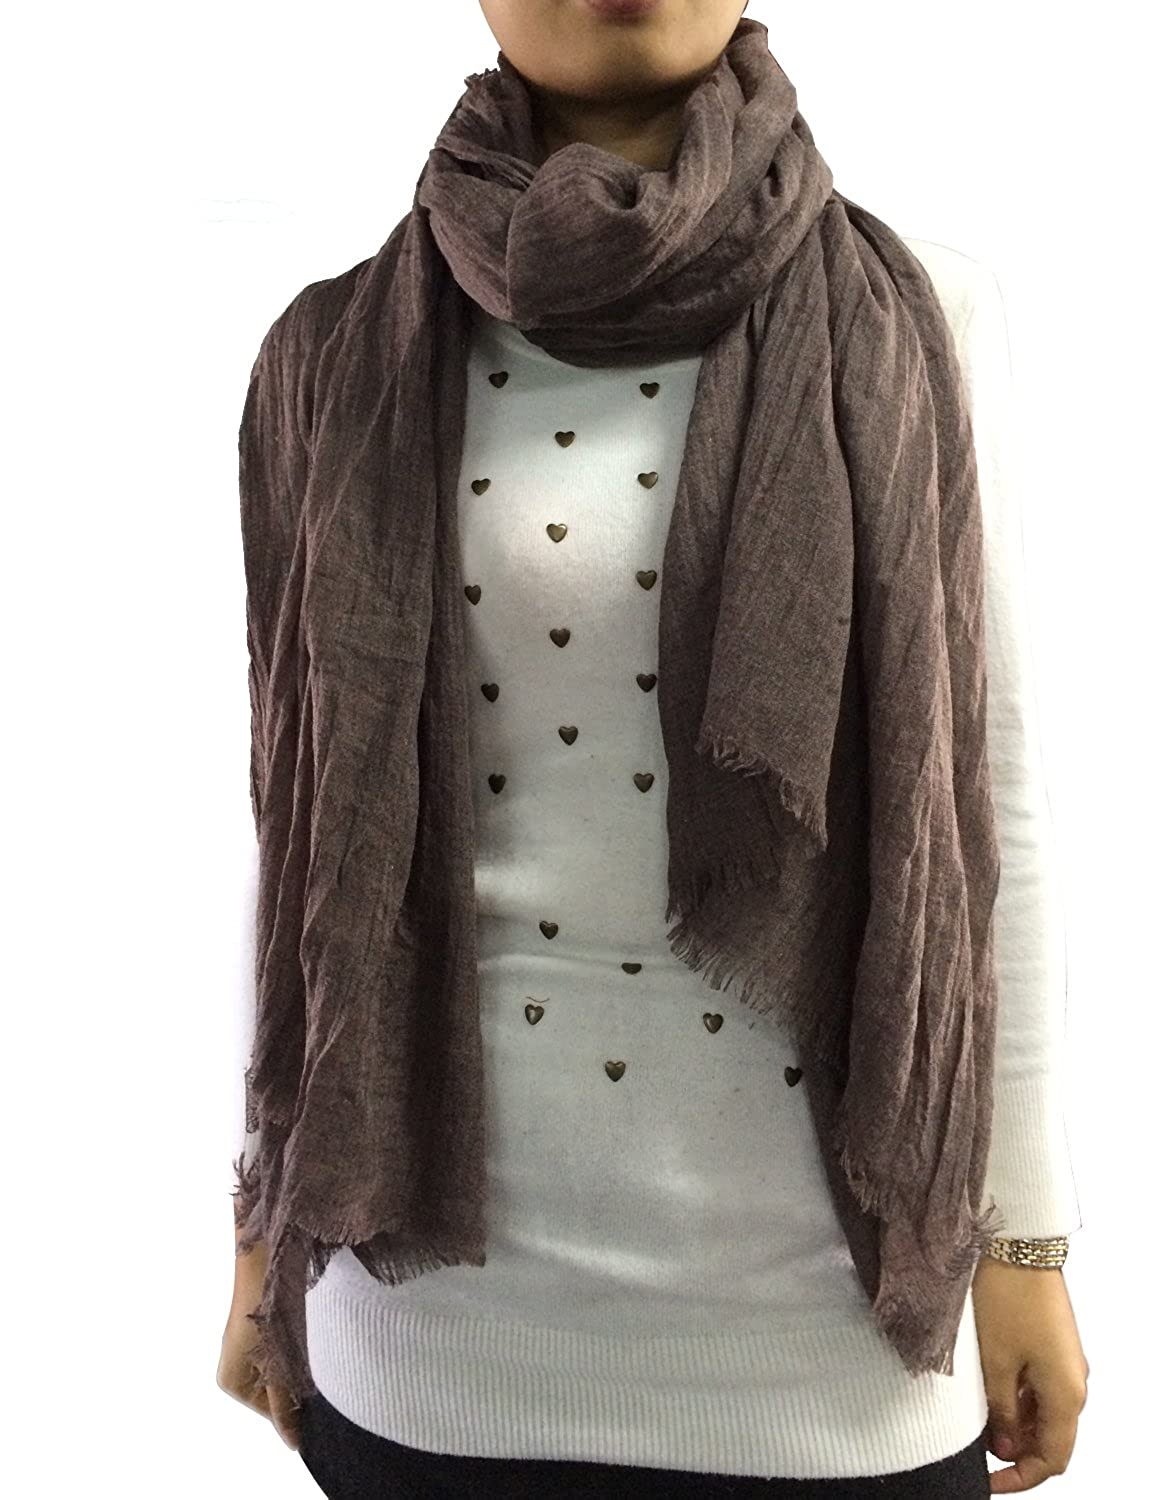 Only Faith Women's Large Thinnish Pure Color Scarf Joker Burrs Shawl Grey